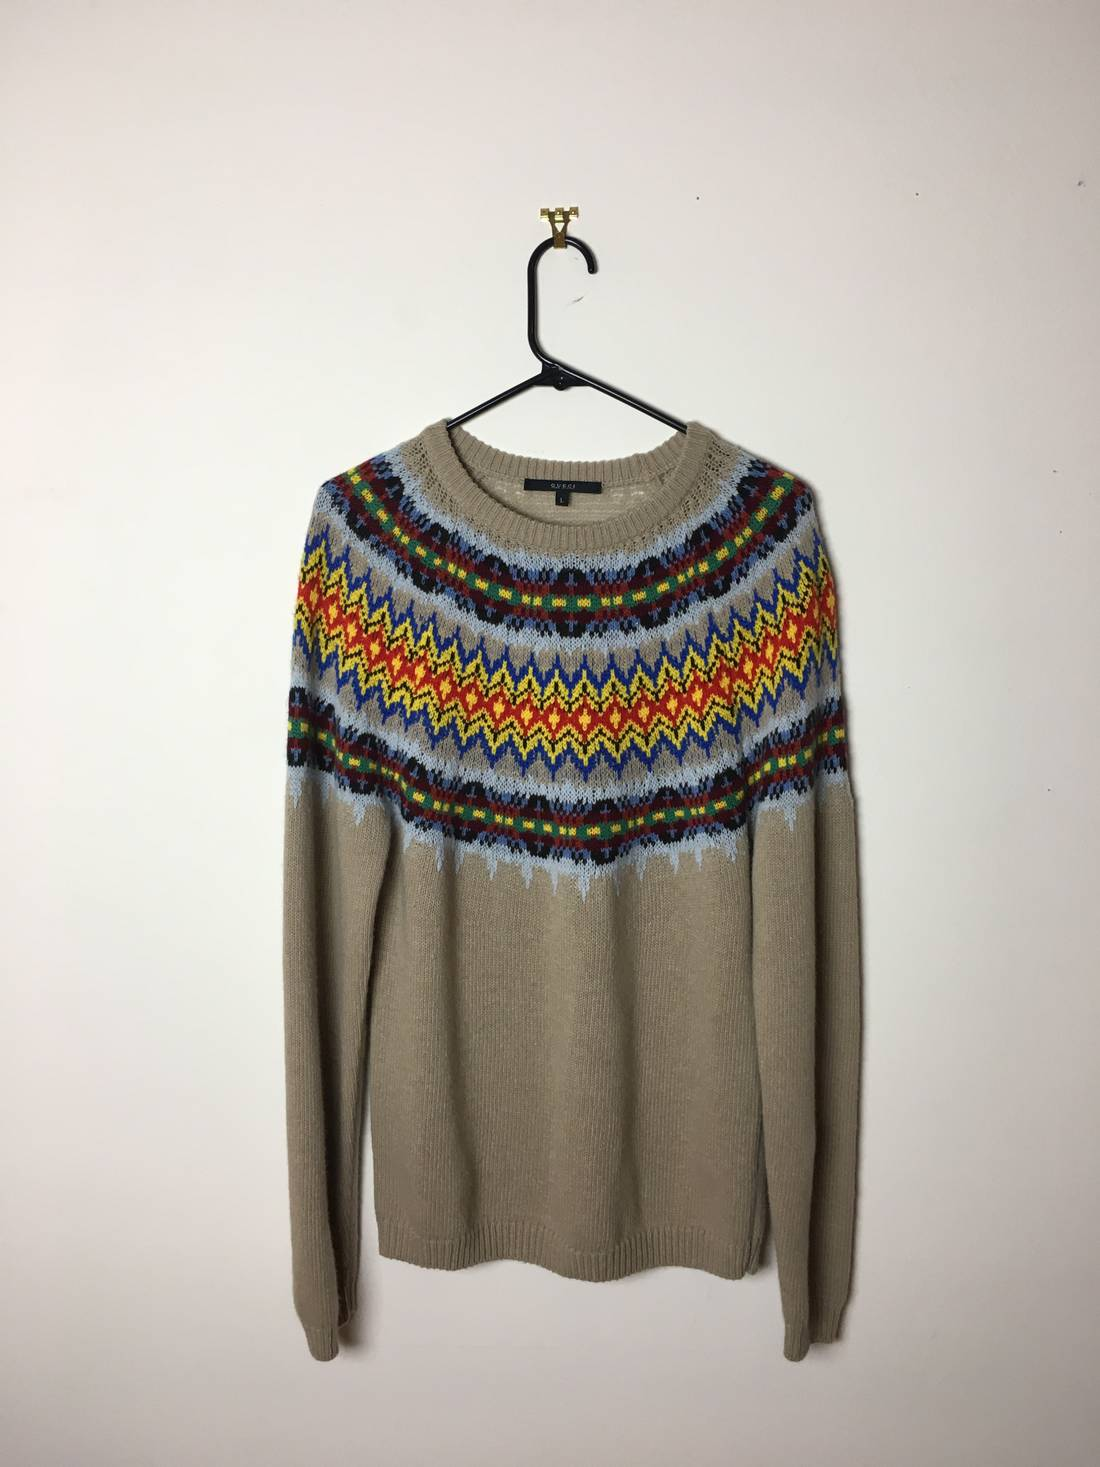 Gucci Fair Isle Sweater Size l - Sweaters & Knitwear for Sale ...